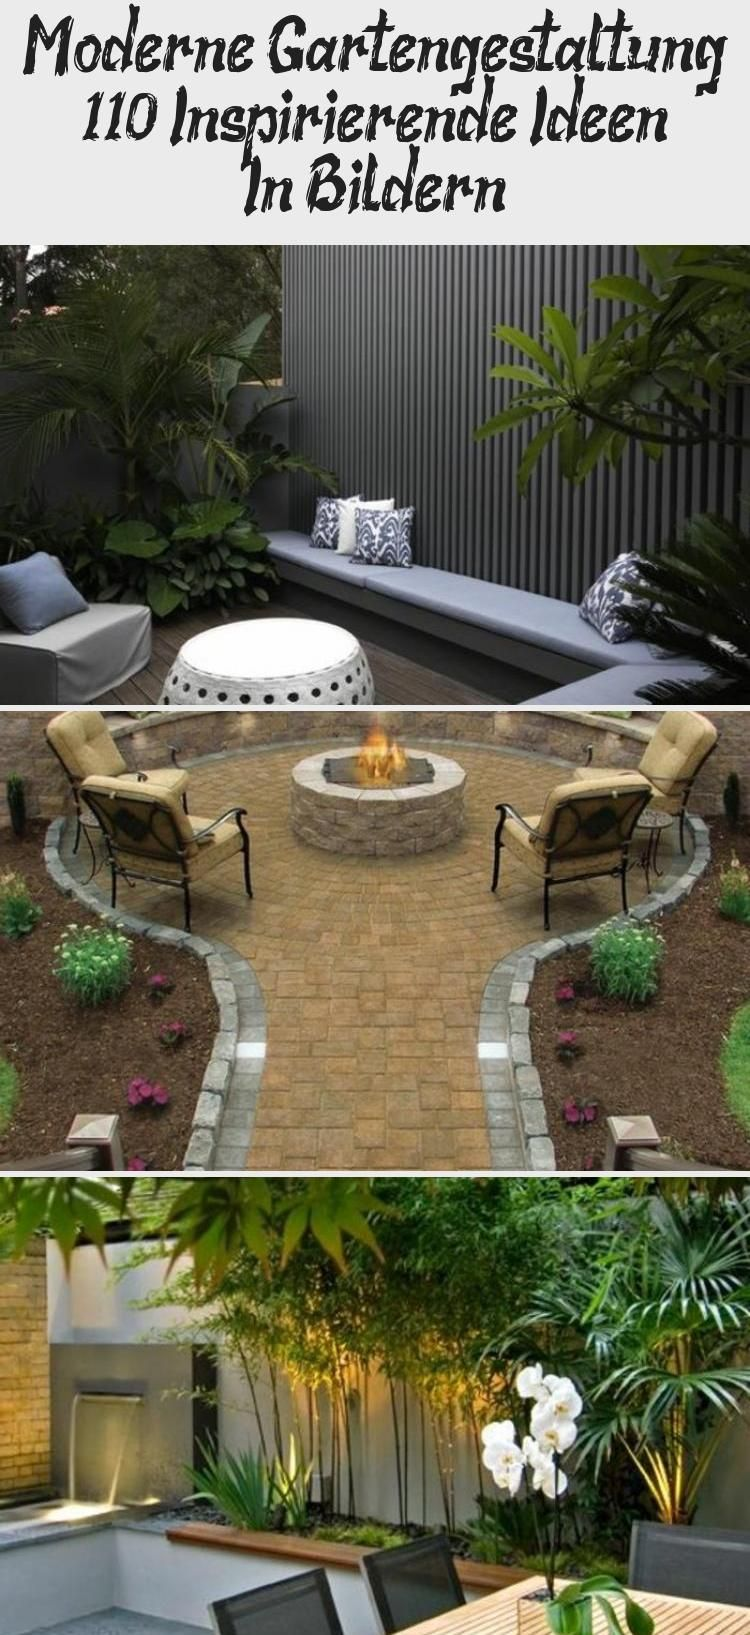 Moderne Gartengestaltung 110 Inspirierende Ideen In Bildern Outdoor Decor Patio Outdoor